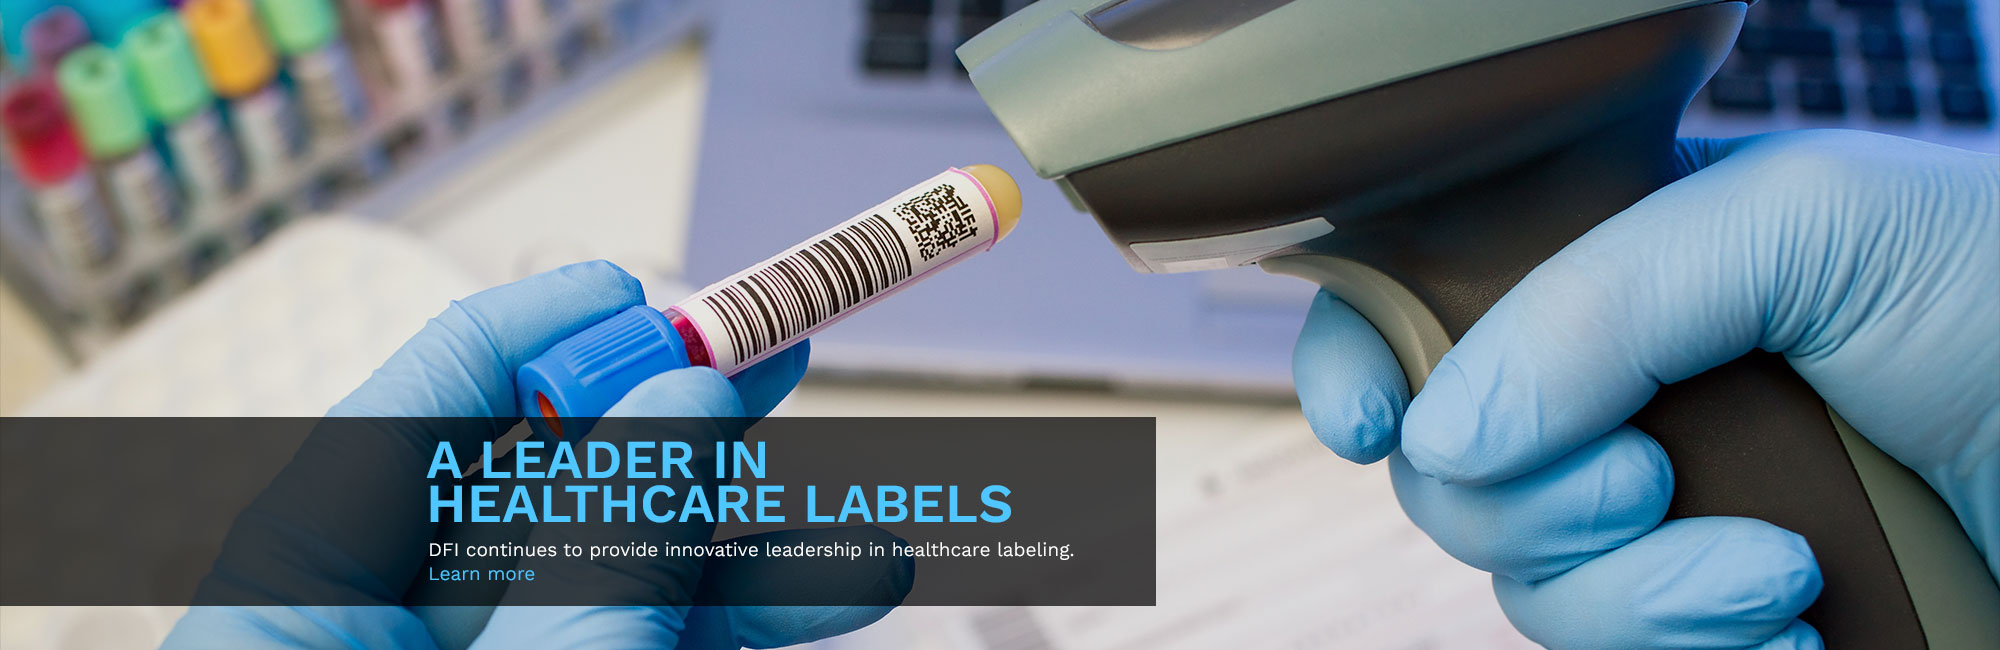 Leader in Healthcare Labels